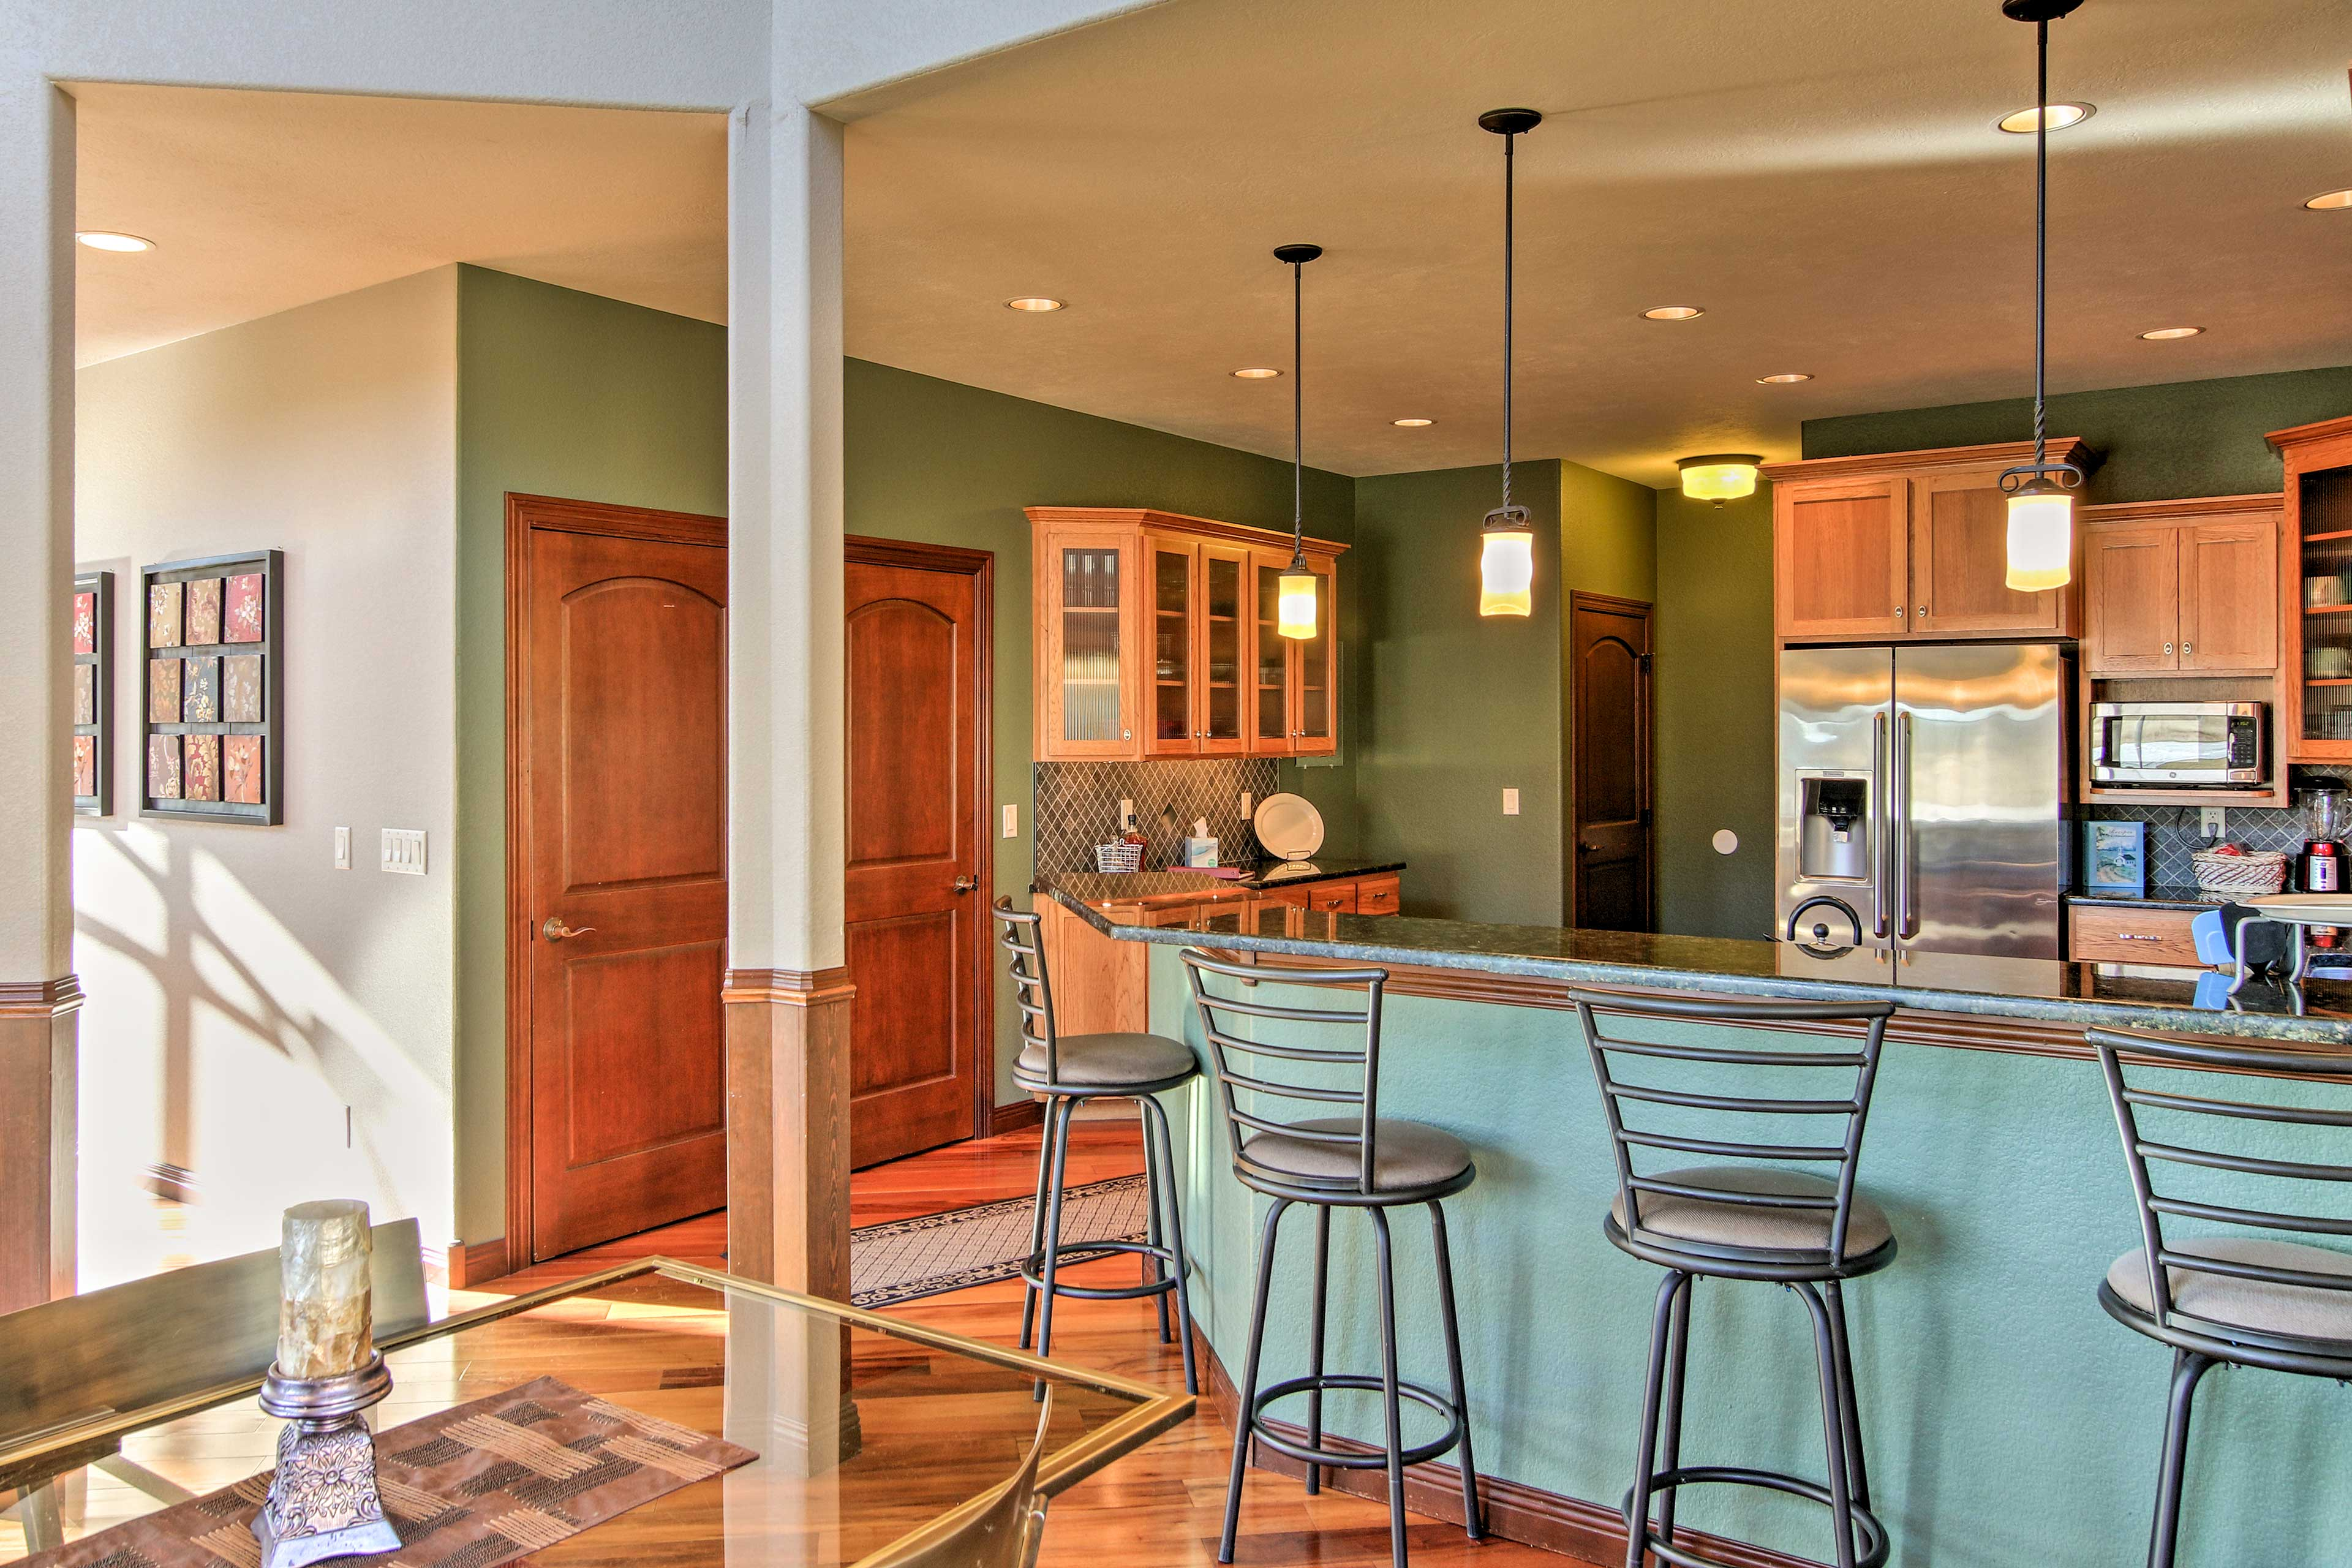 The kitchen opens freely to the spacious living room.